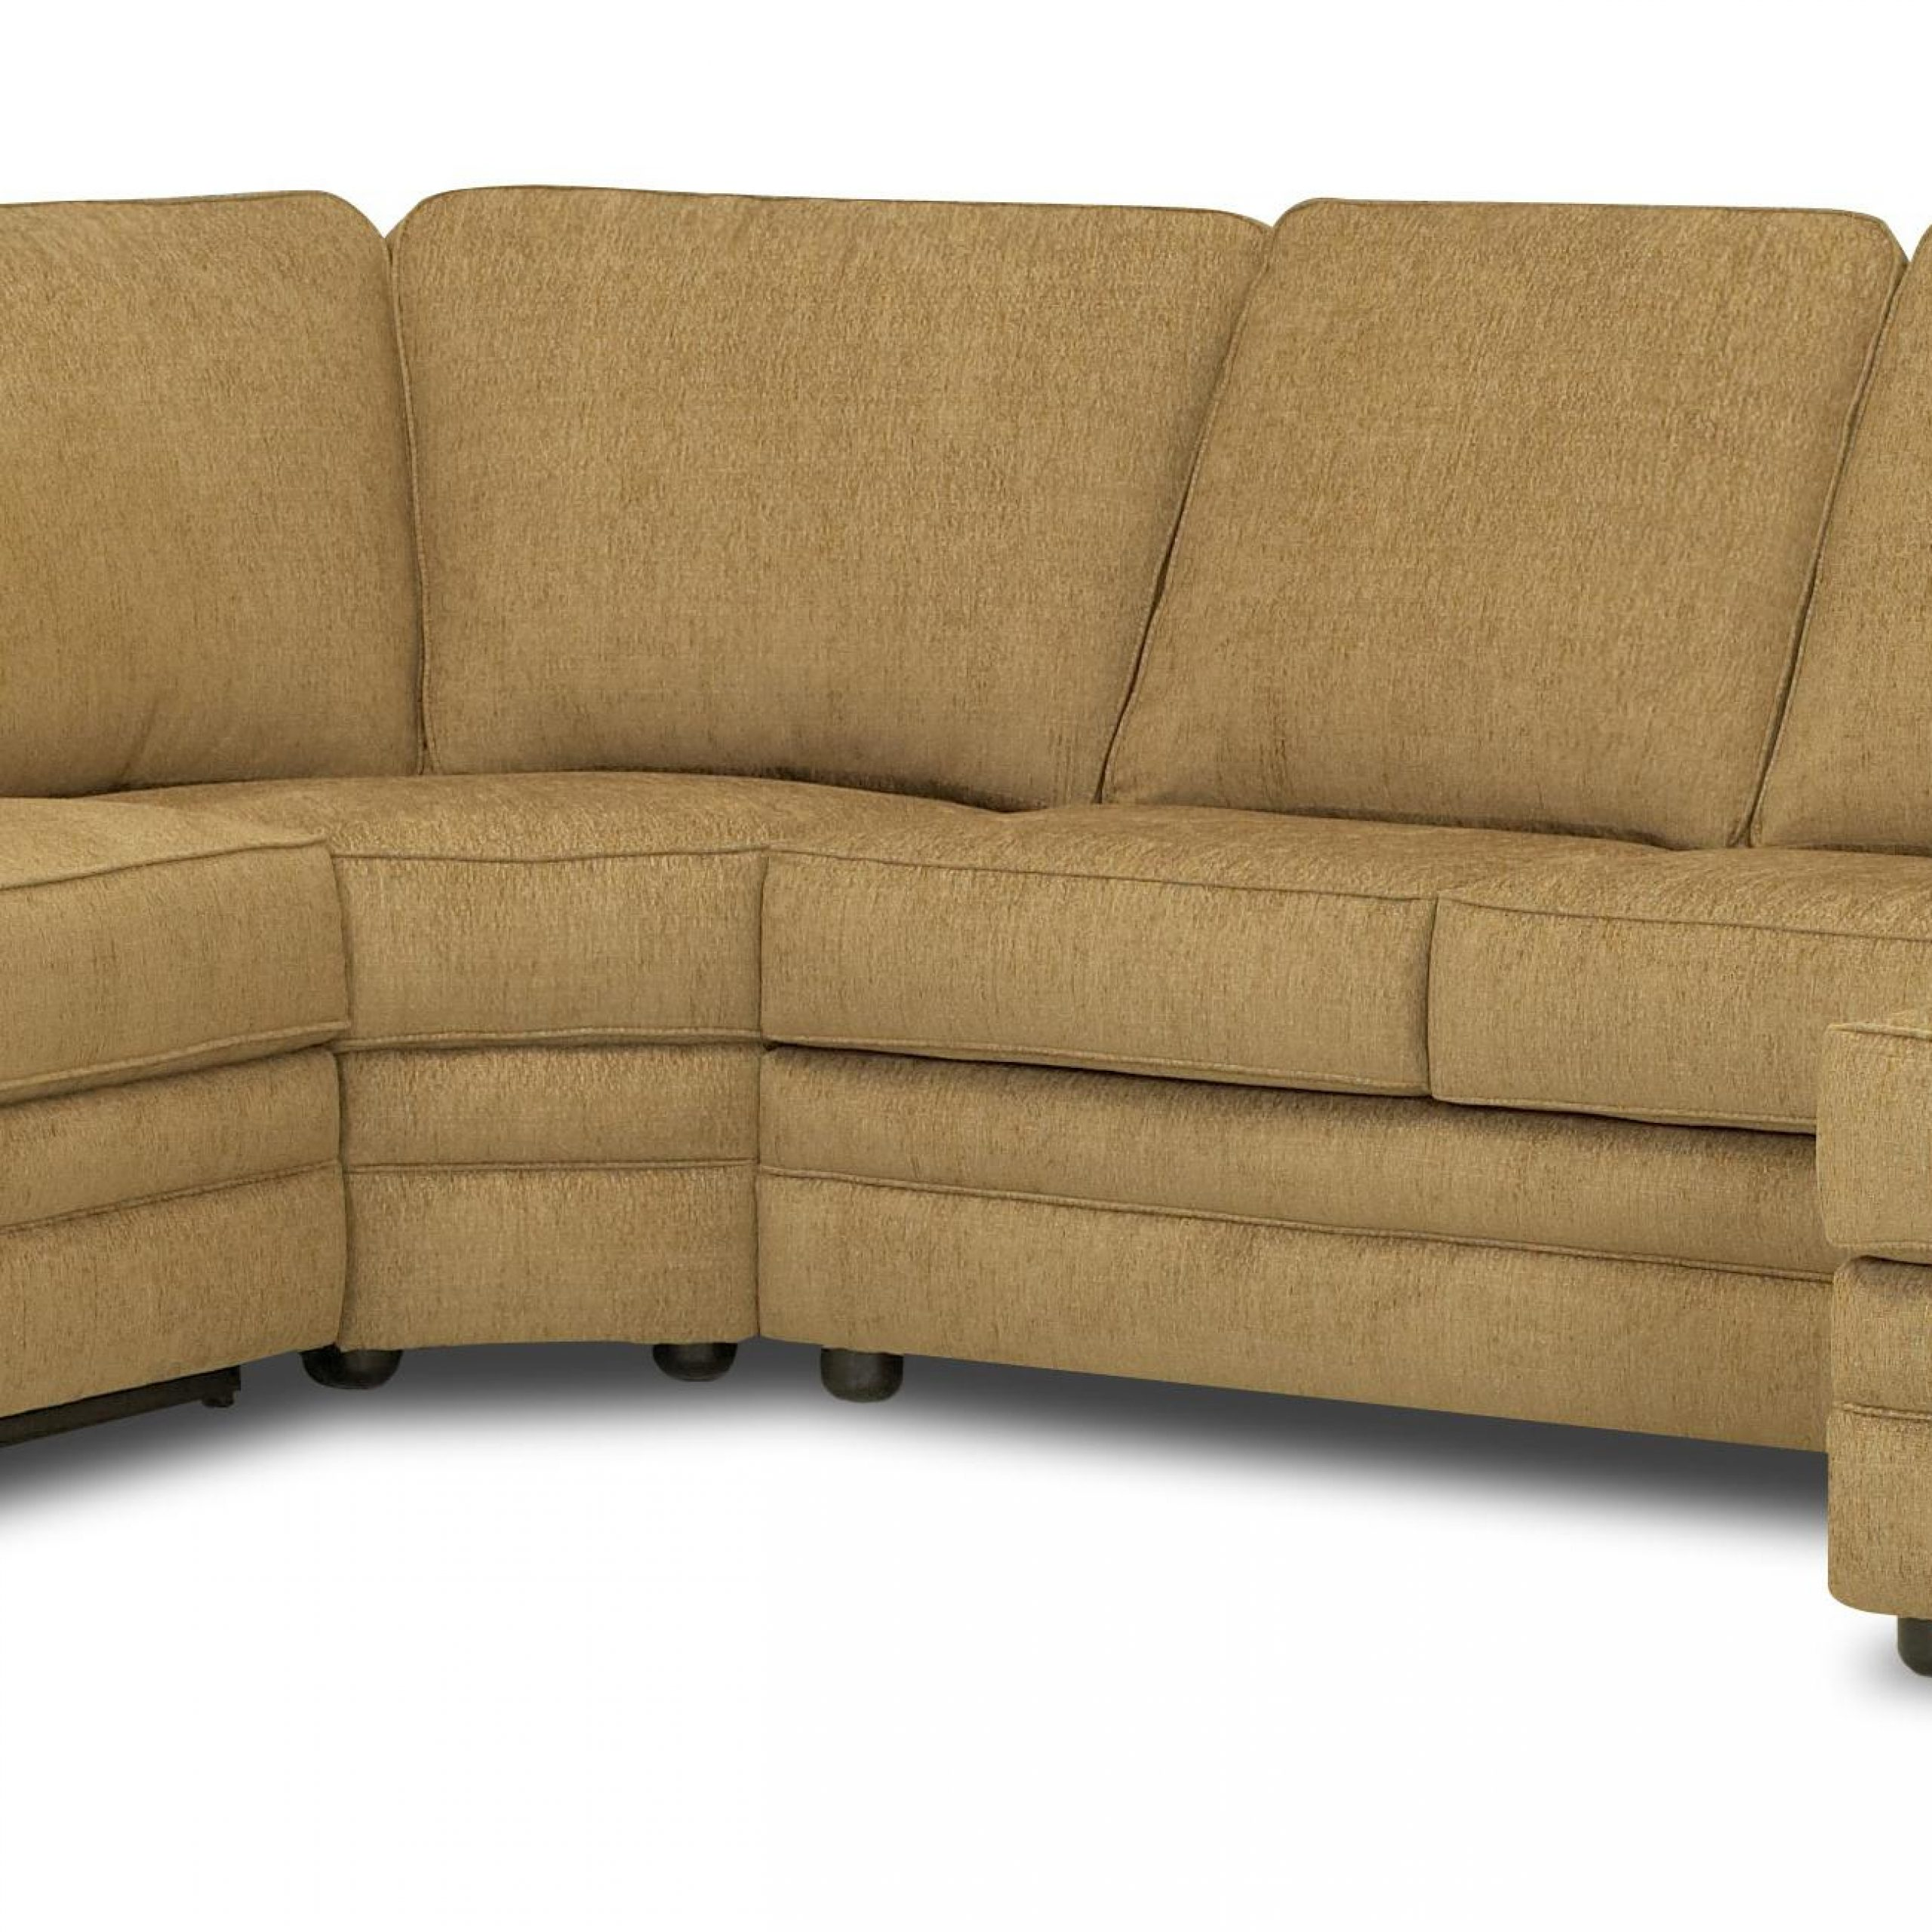 Widely Used Reclining Sectional With Left Side Chaiseklaussner Intended For Copenhagen Reclining Sectional Sofas With Left Storage Chaise (View 18 of 20)